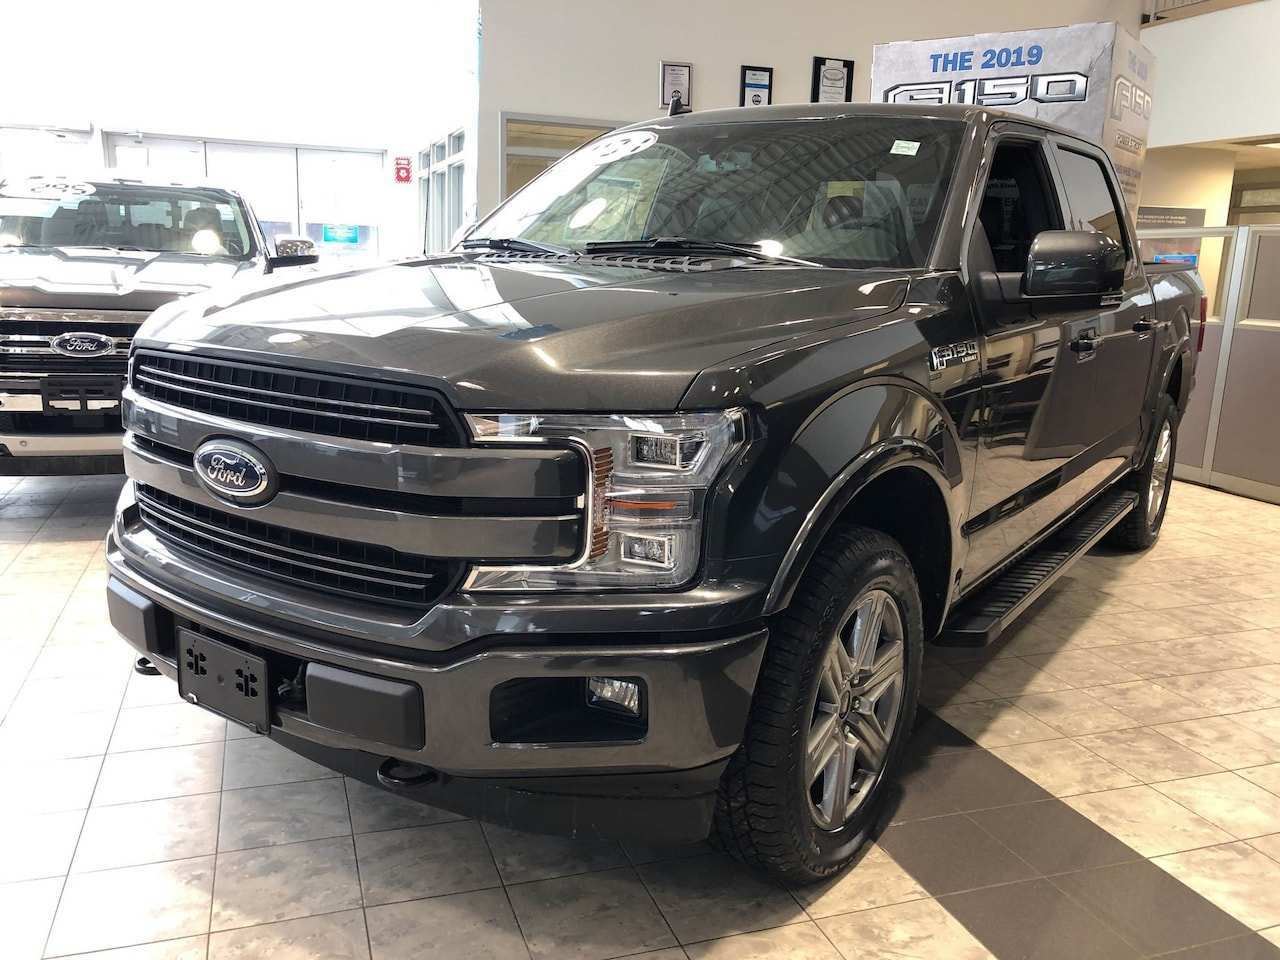 91 New The Ford Lariat 2019 Performance Redesign with The Ford Lariat 2019 Performance